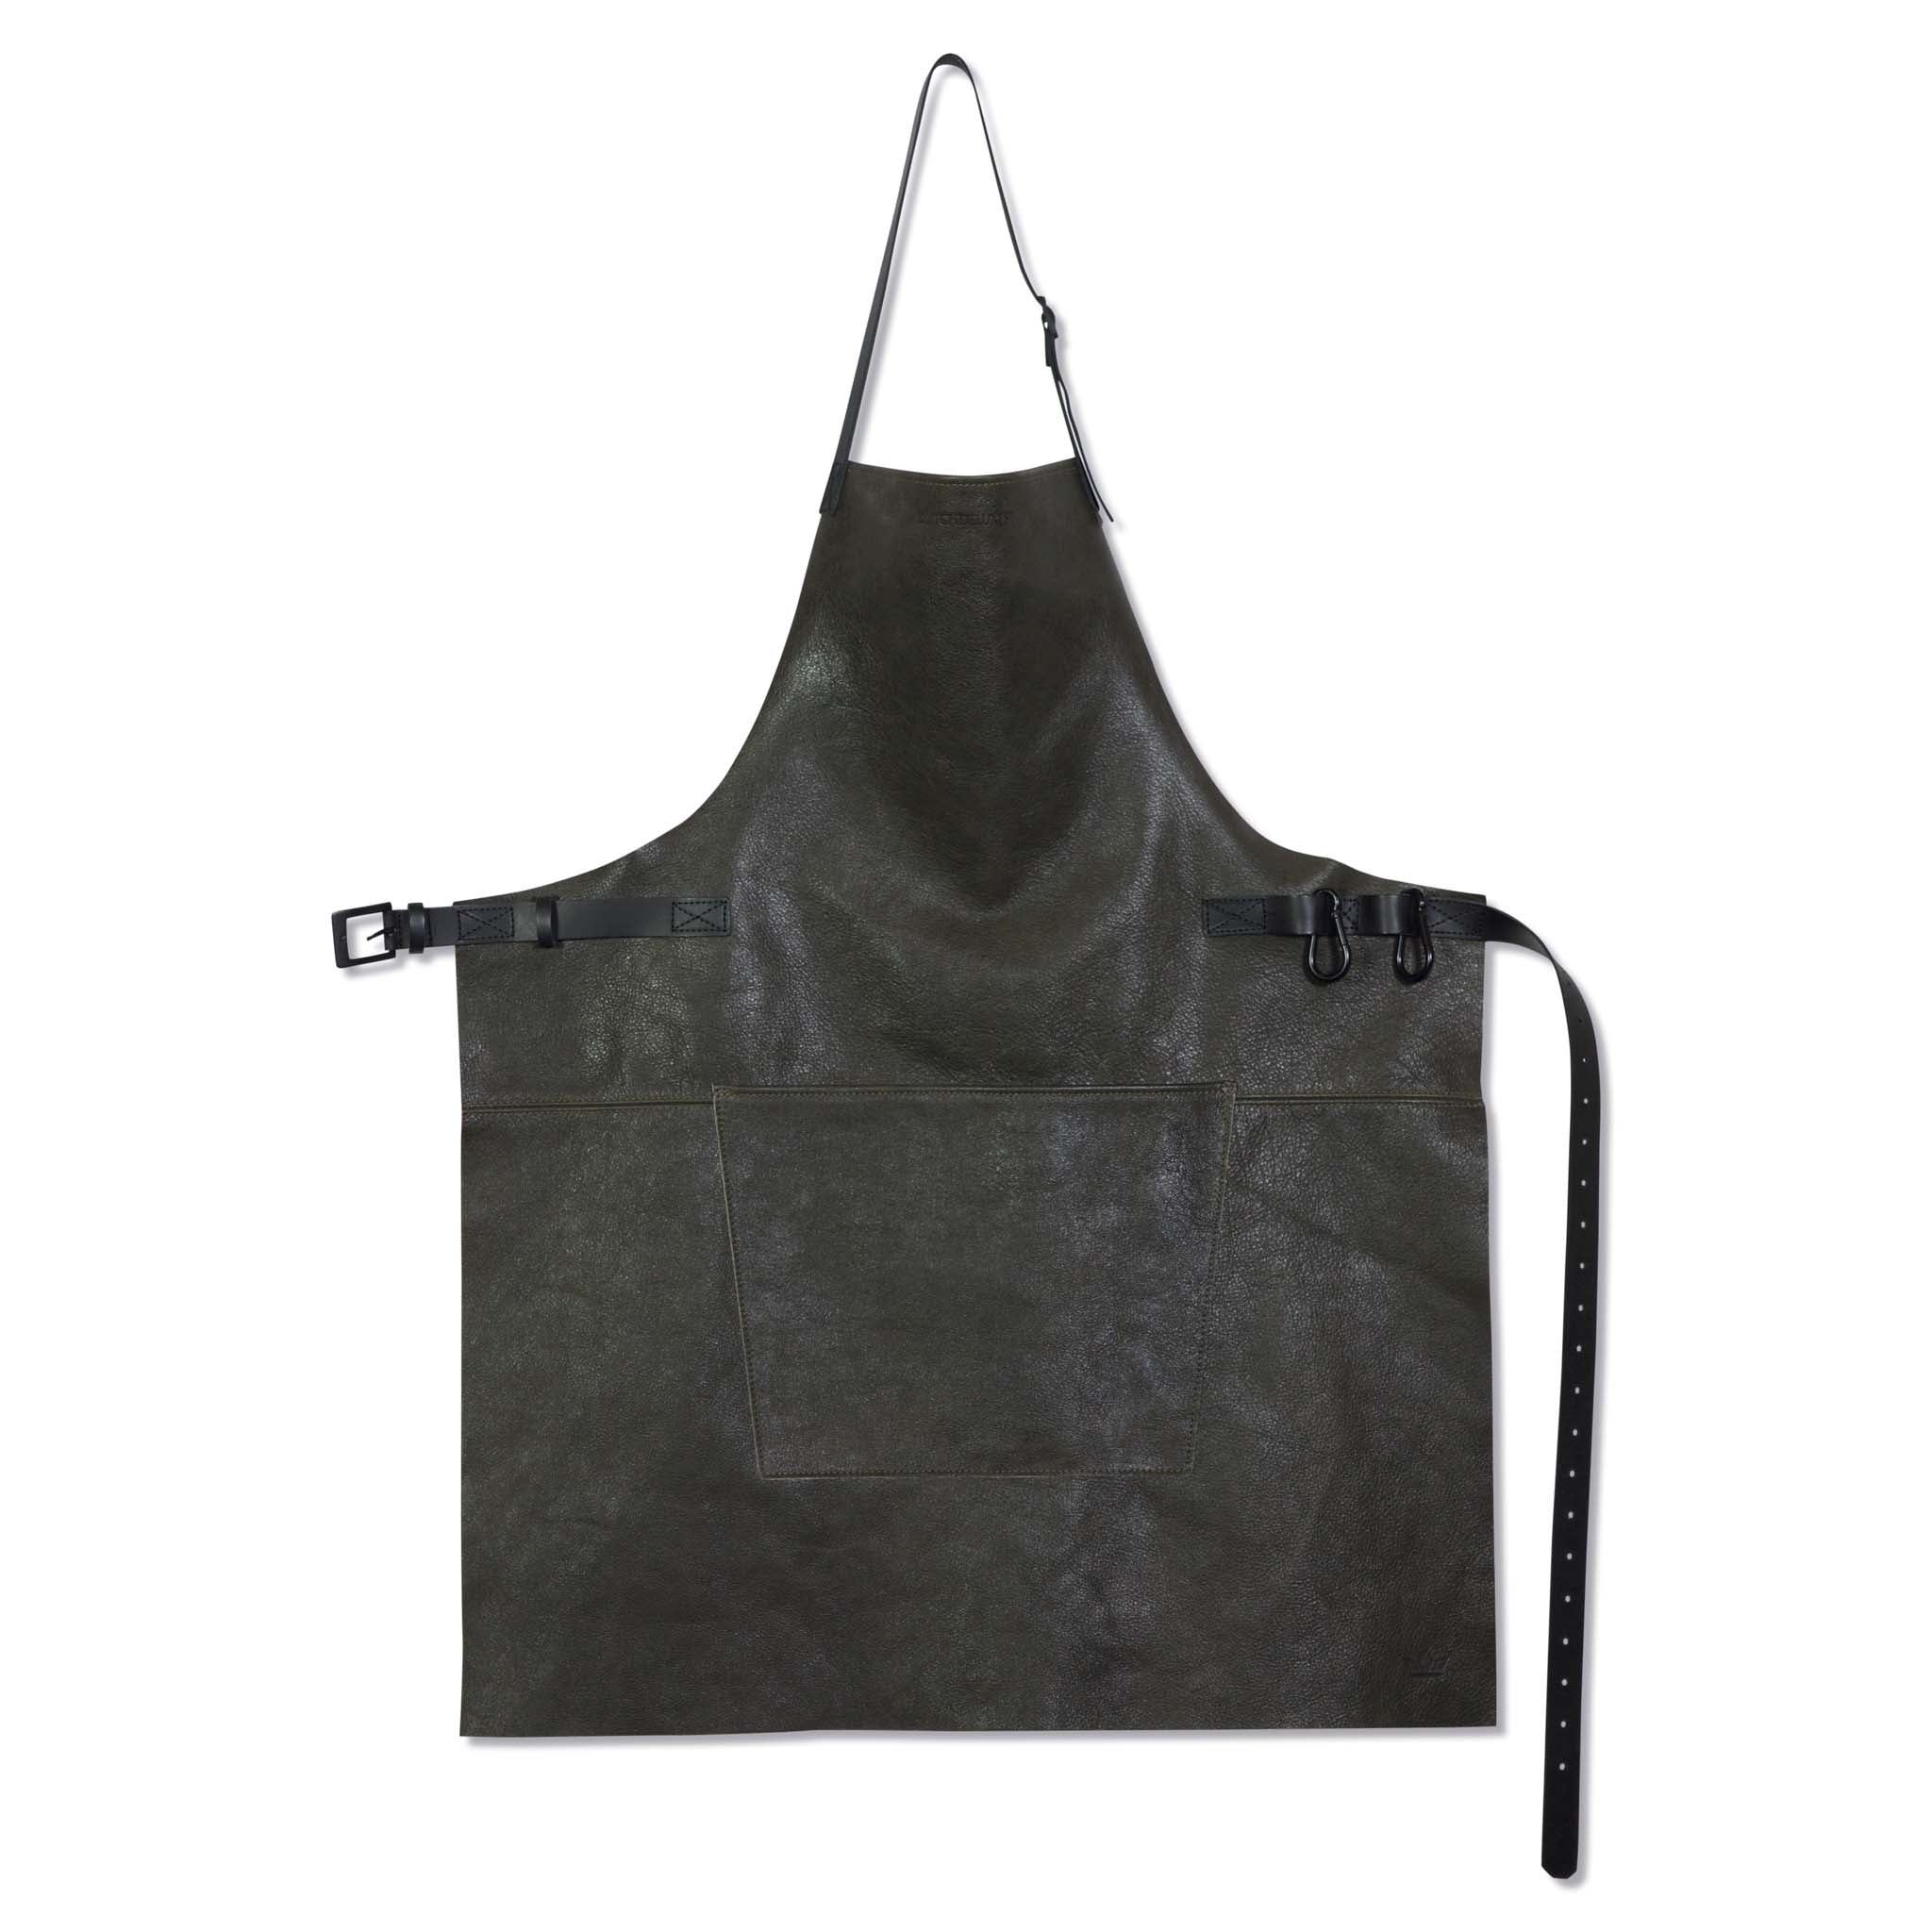 Dutchdeluxes Leather BBQ Apron in Vintage Grey Cookware Kitchen Clothing